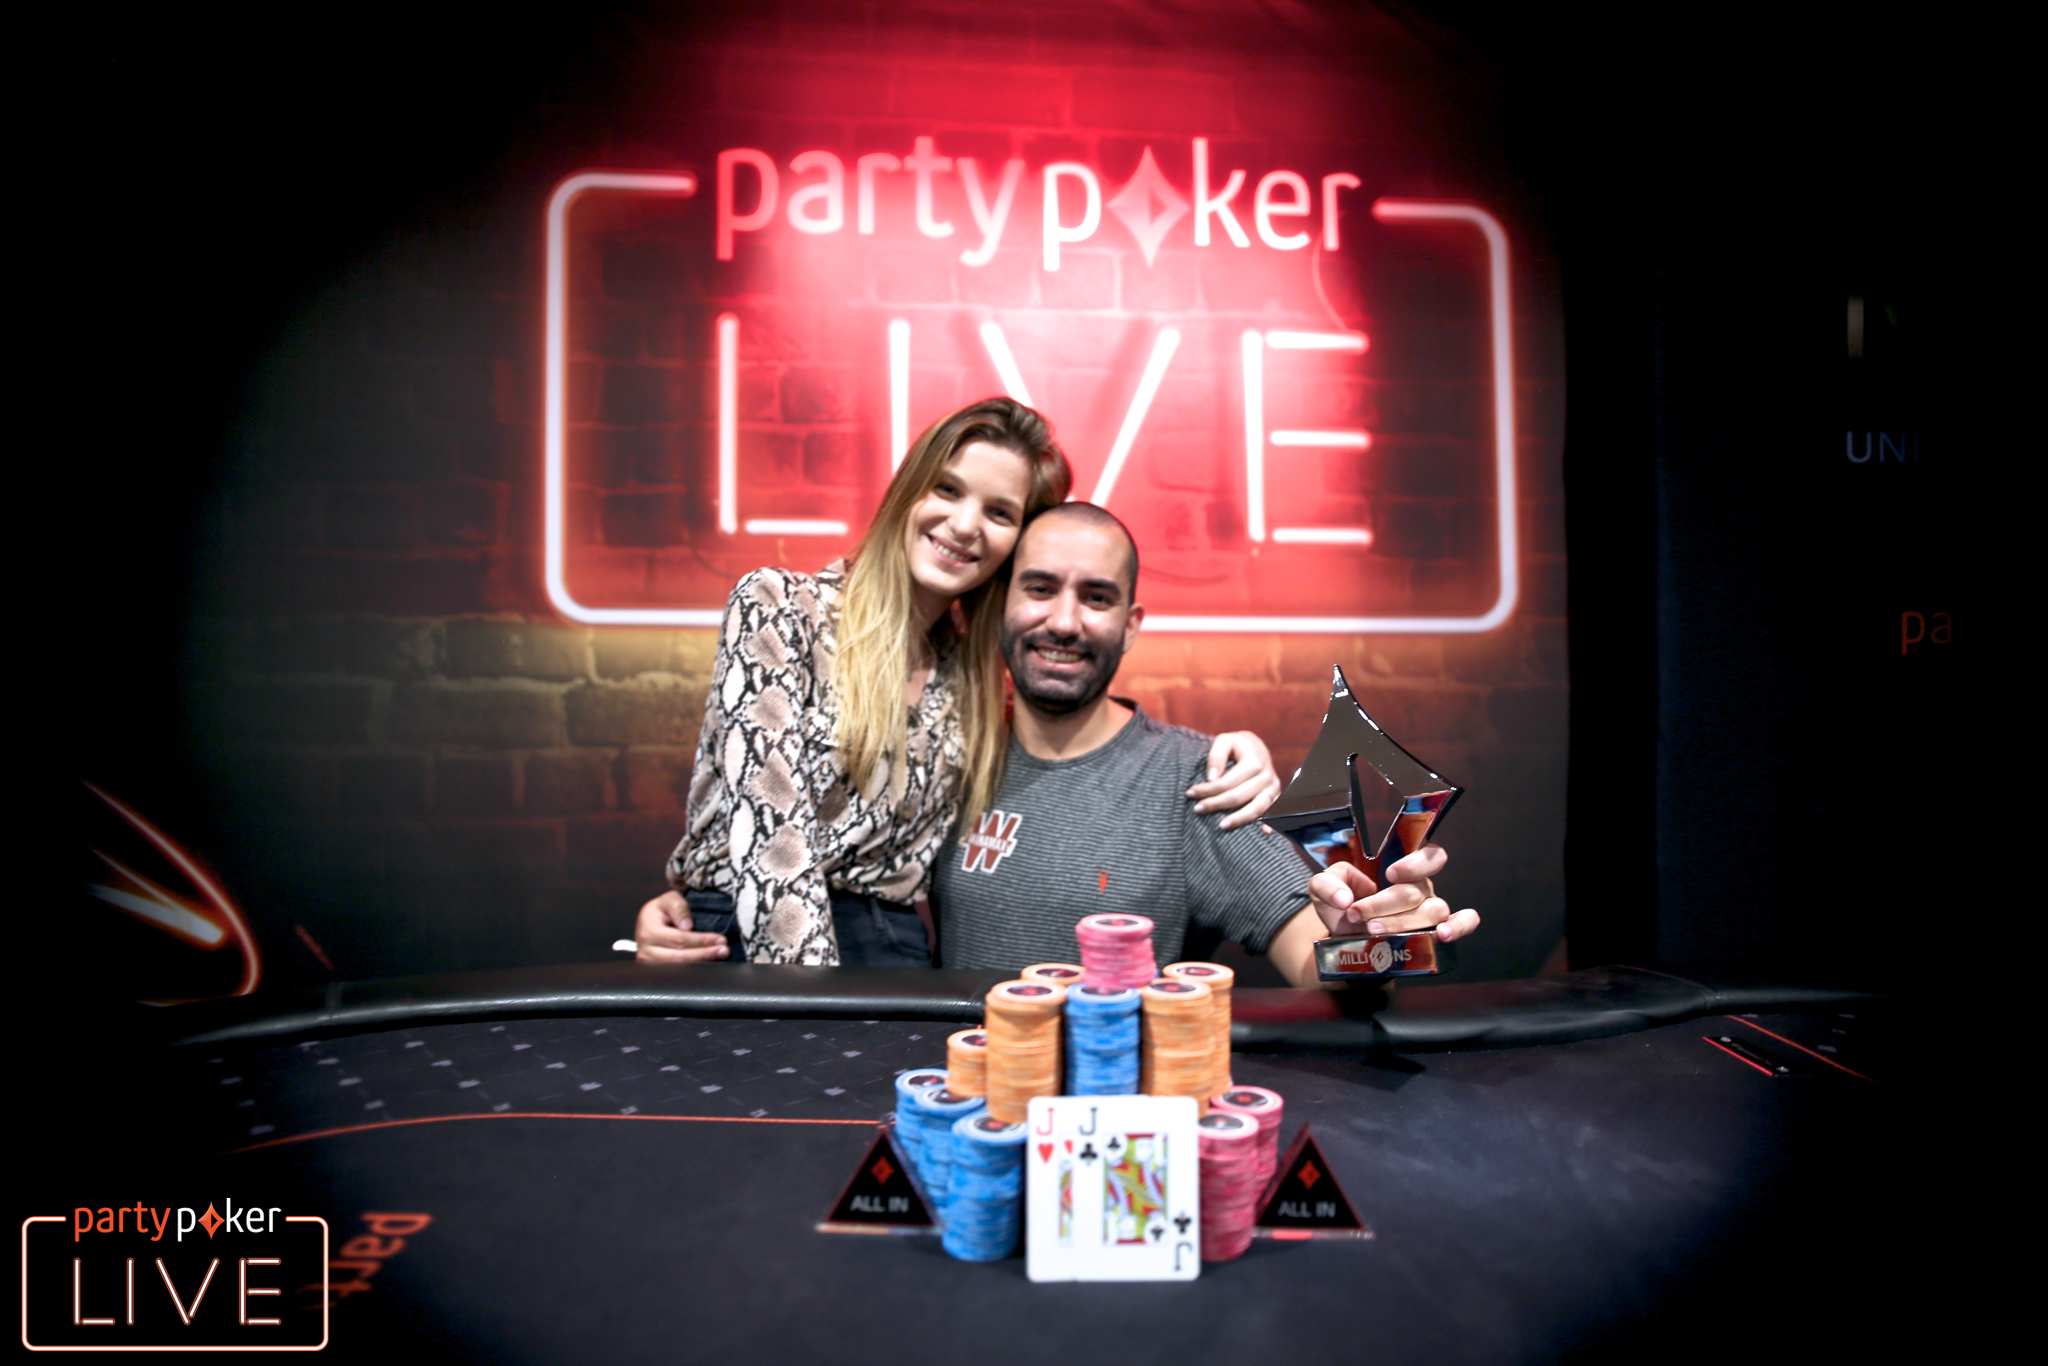 Joao Vieira and his girlfriend (photo: Mickey May/partypoker)